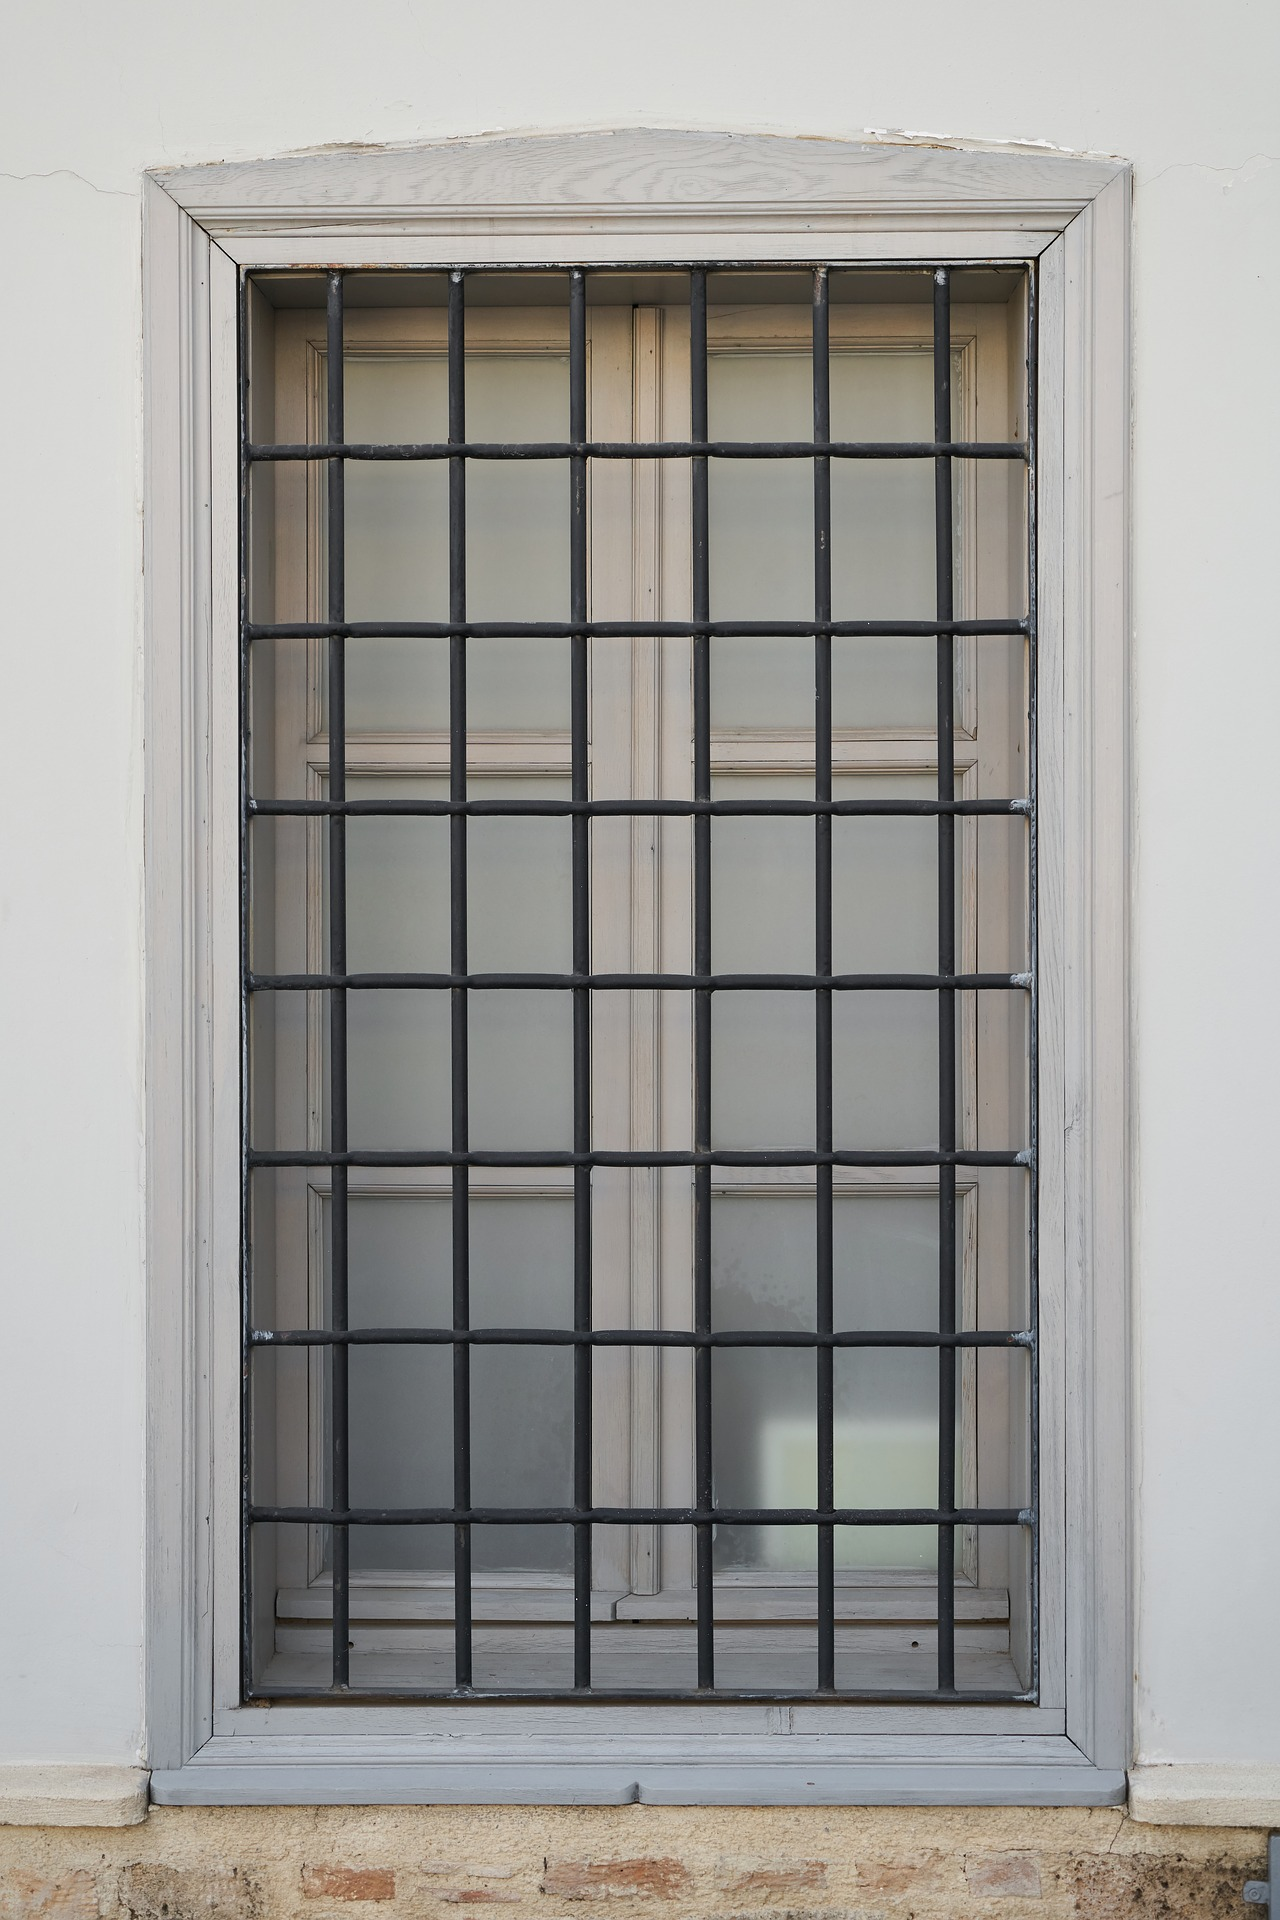 Security bars protecting a window